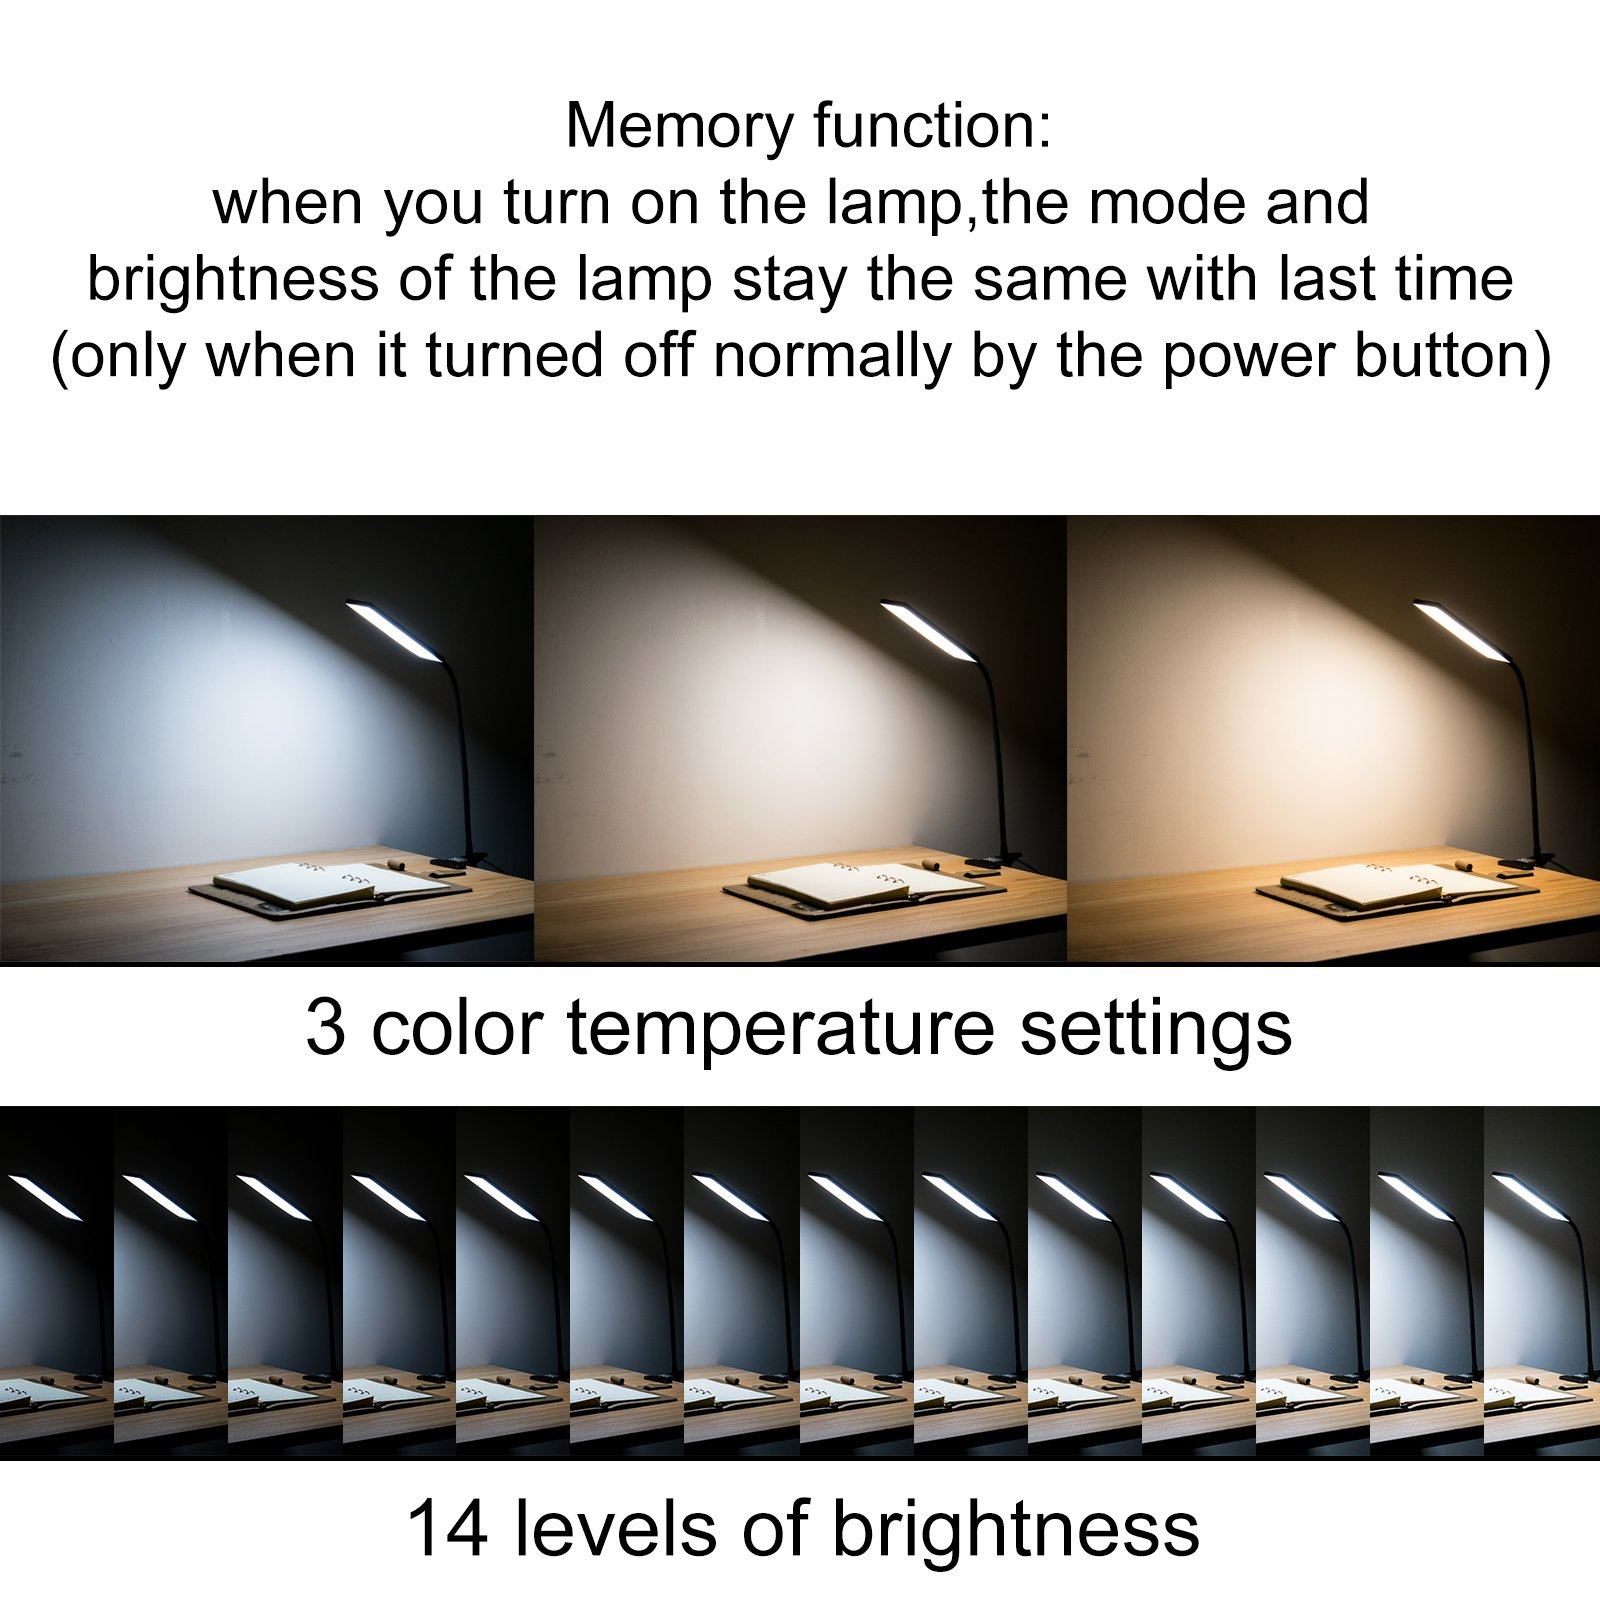 LED Desk Lamp, RAOYI Eye-Care Dimmable Flexible Gooseneck USB Table Lamp, 3 Color Temperatures, 14 Brightness Levels Clip Reading Lamp for Studying, Working, Black by RAOYI (Image #4)